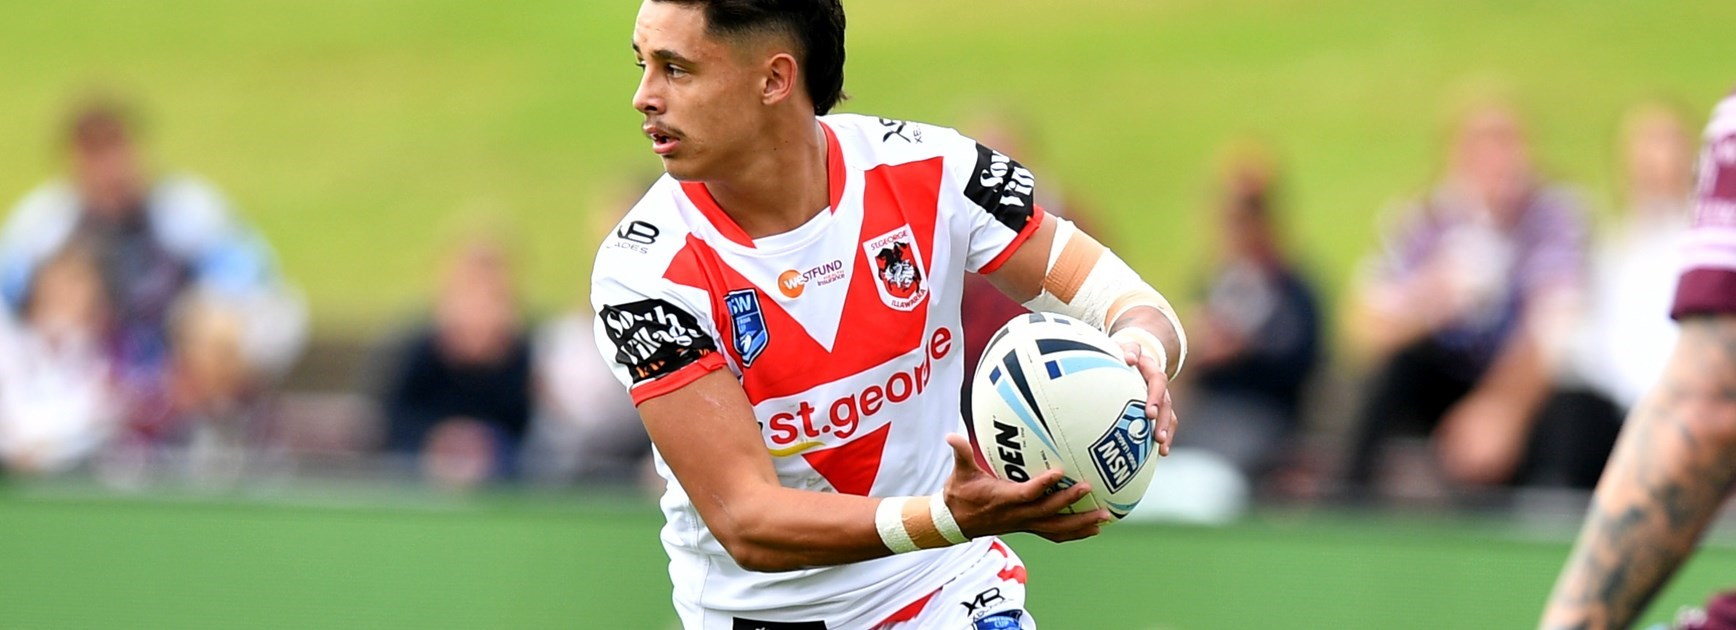 Team in Focus | St George Illawarra Dragons